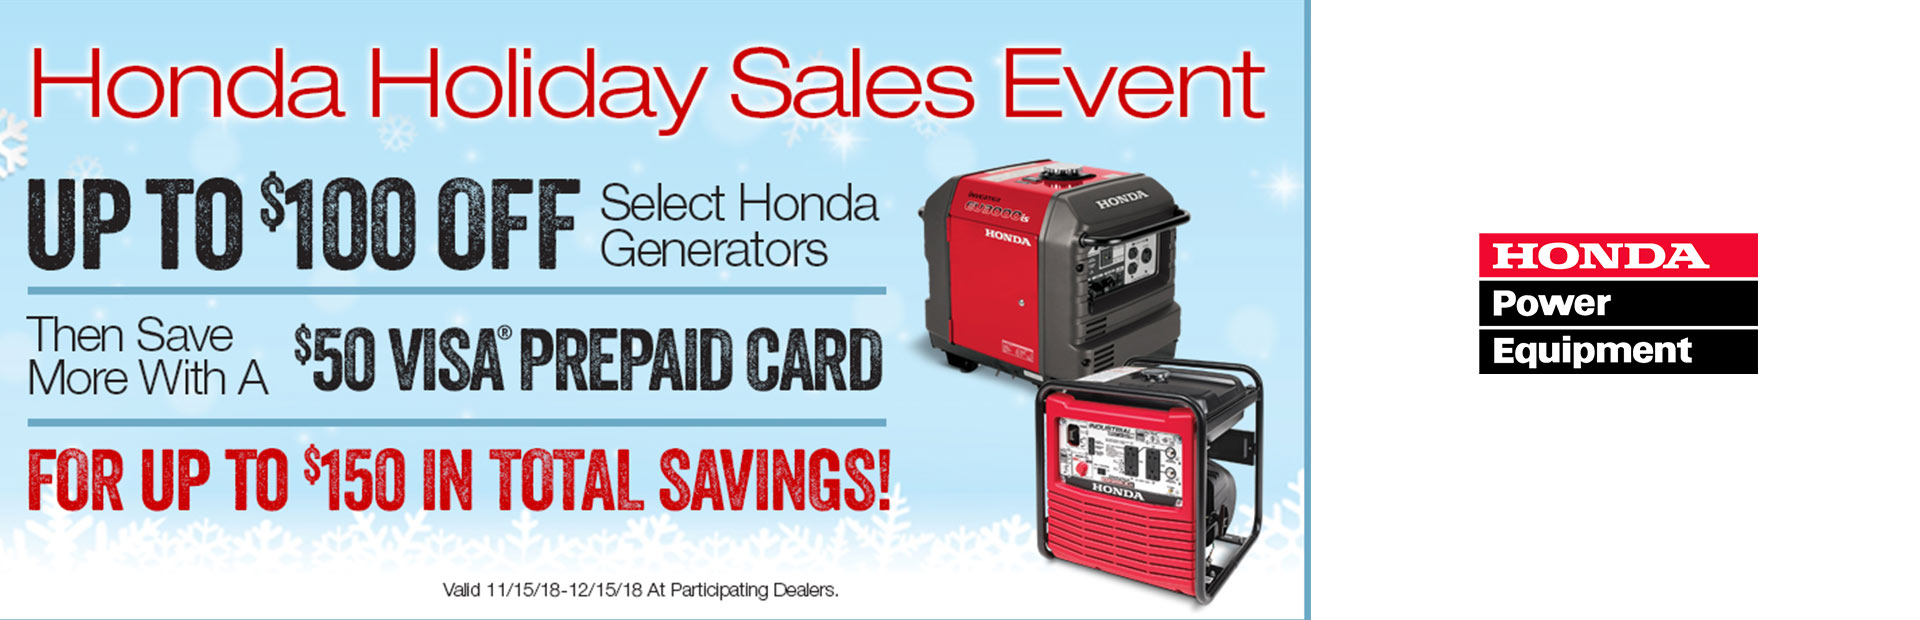 Honda Power Equipment: Honda Holiday Sales Event